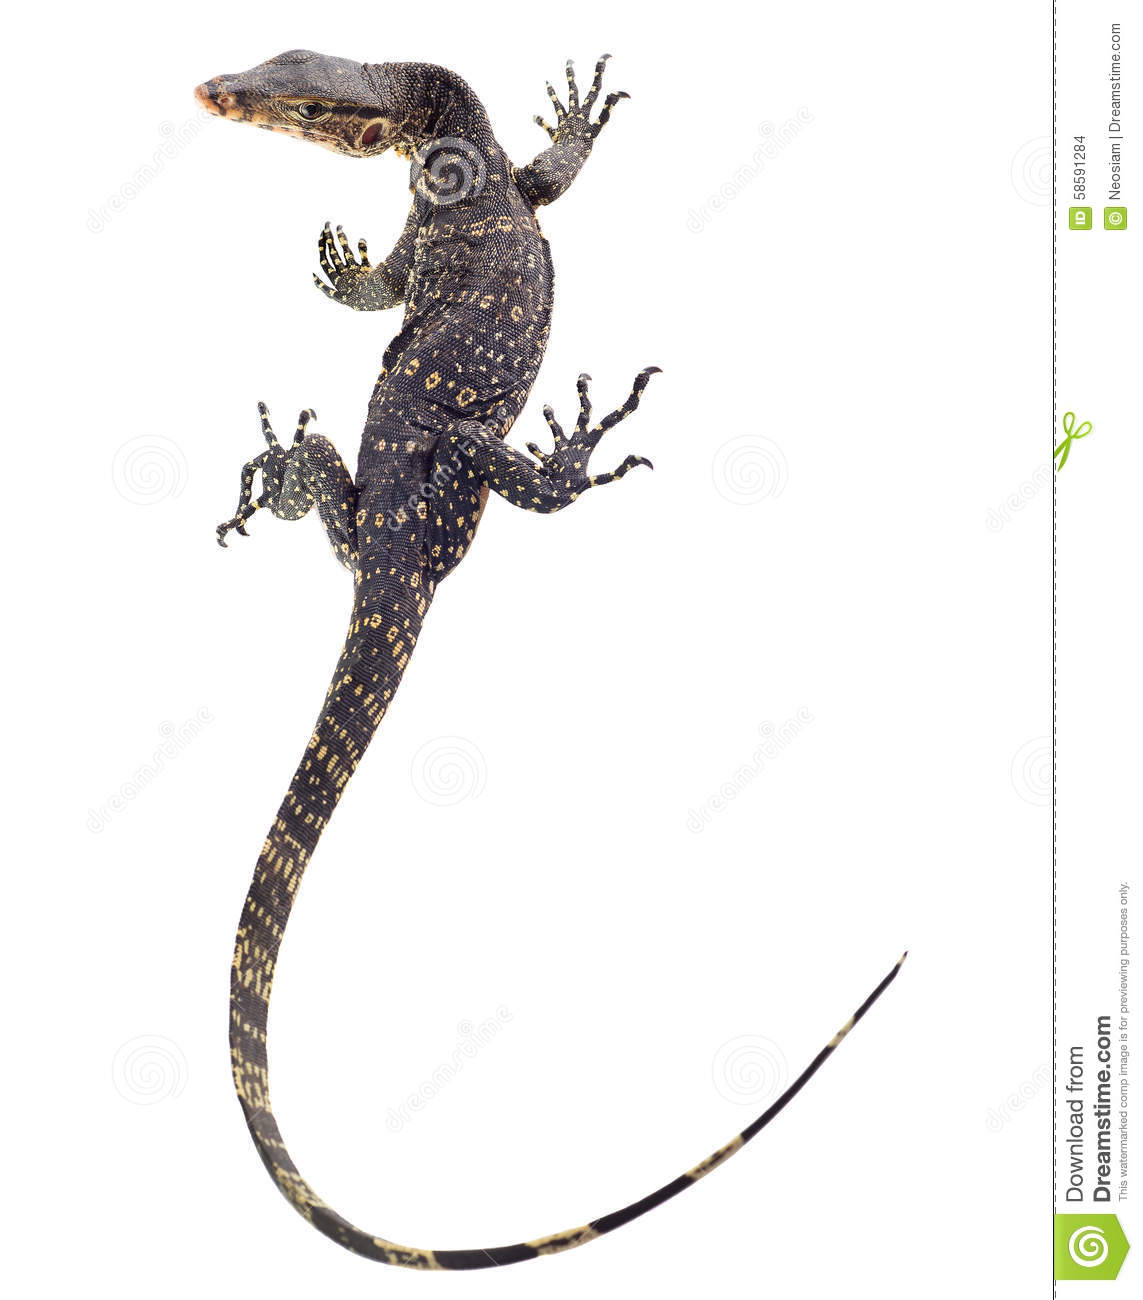 Asian Water Monitor clipart #9, Download drawings